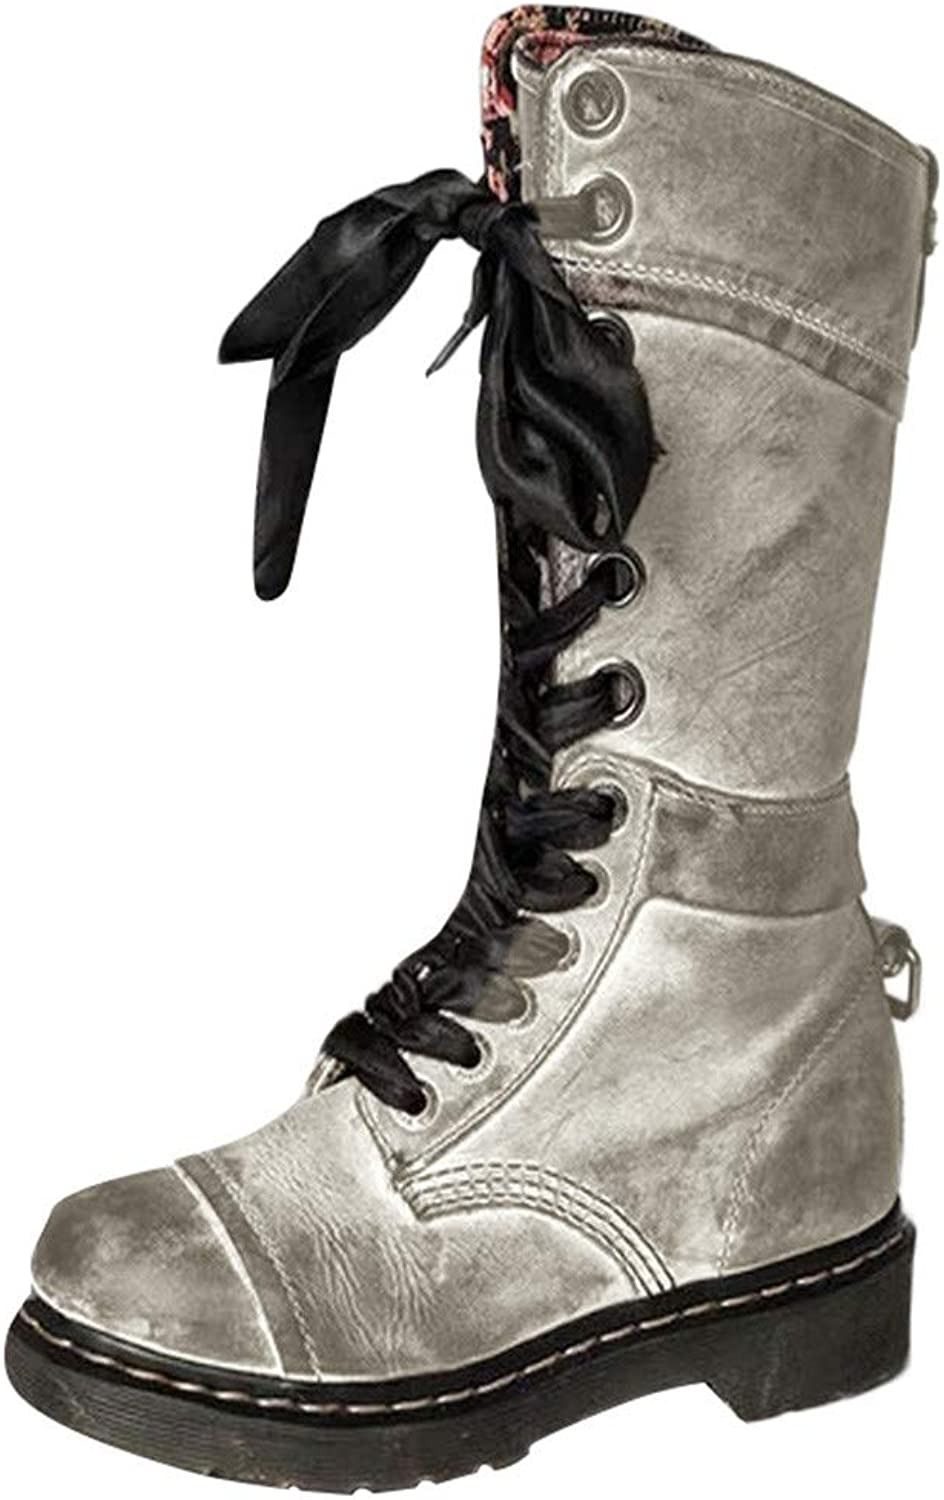 ThePass Women's Retro Leather Middle Boot Round Toe Lace-Up Martin shoes